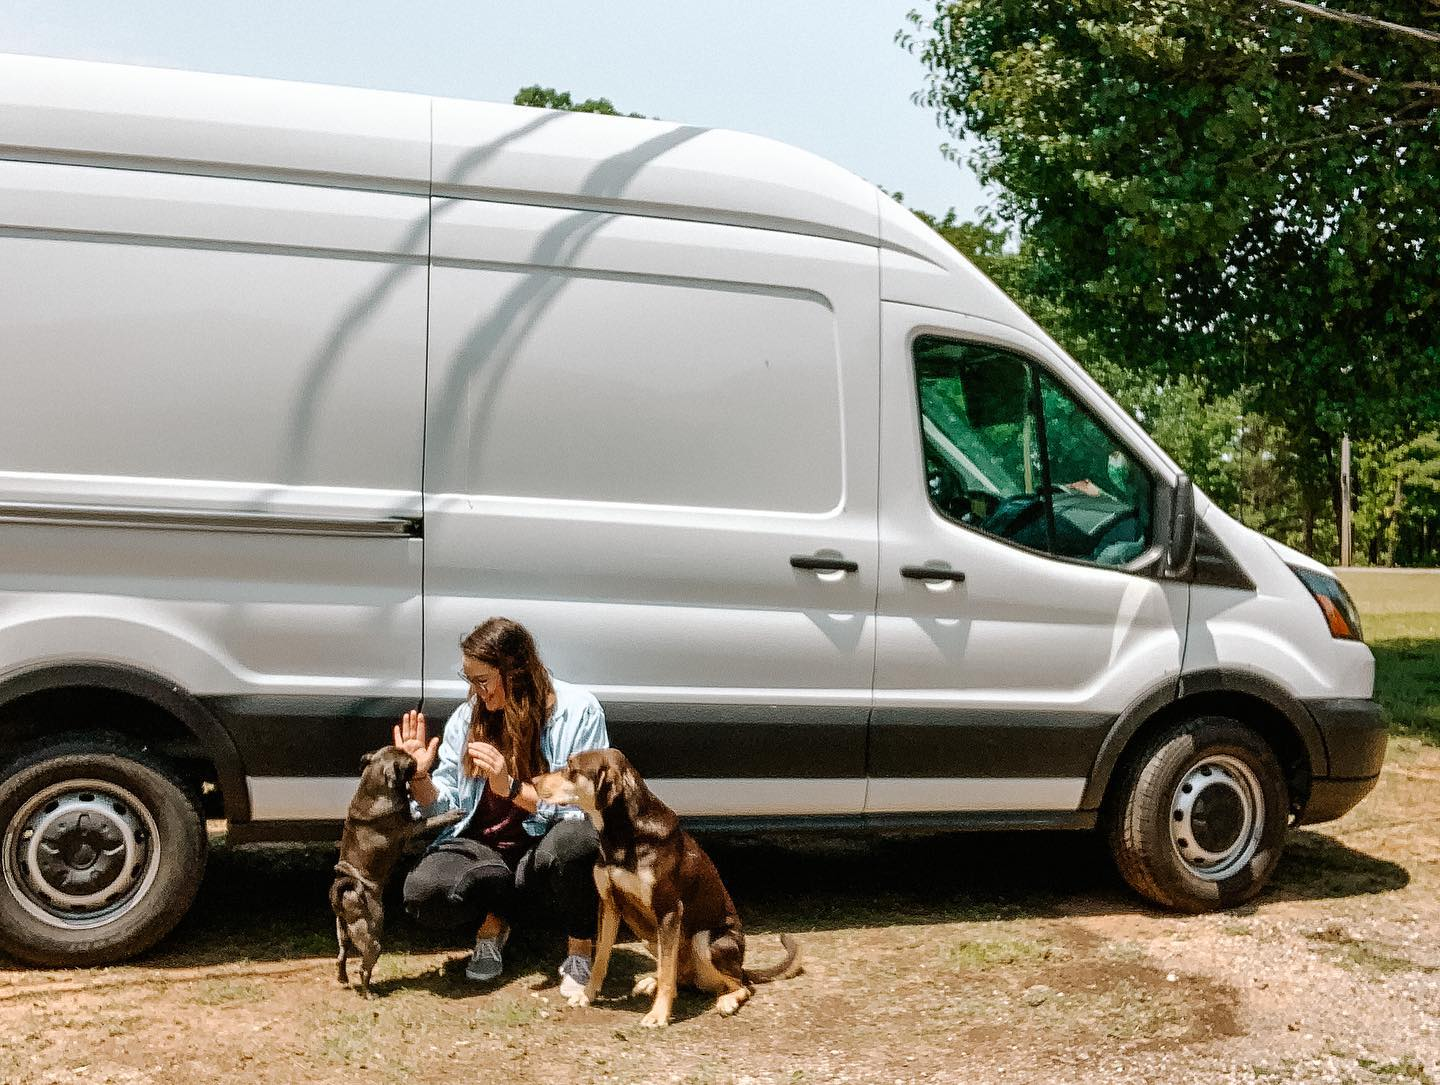 Girl crouched in front of a white Ford Transit van with a silver pug on one side and a tan/brown dog on the other side.